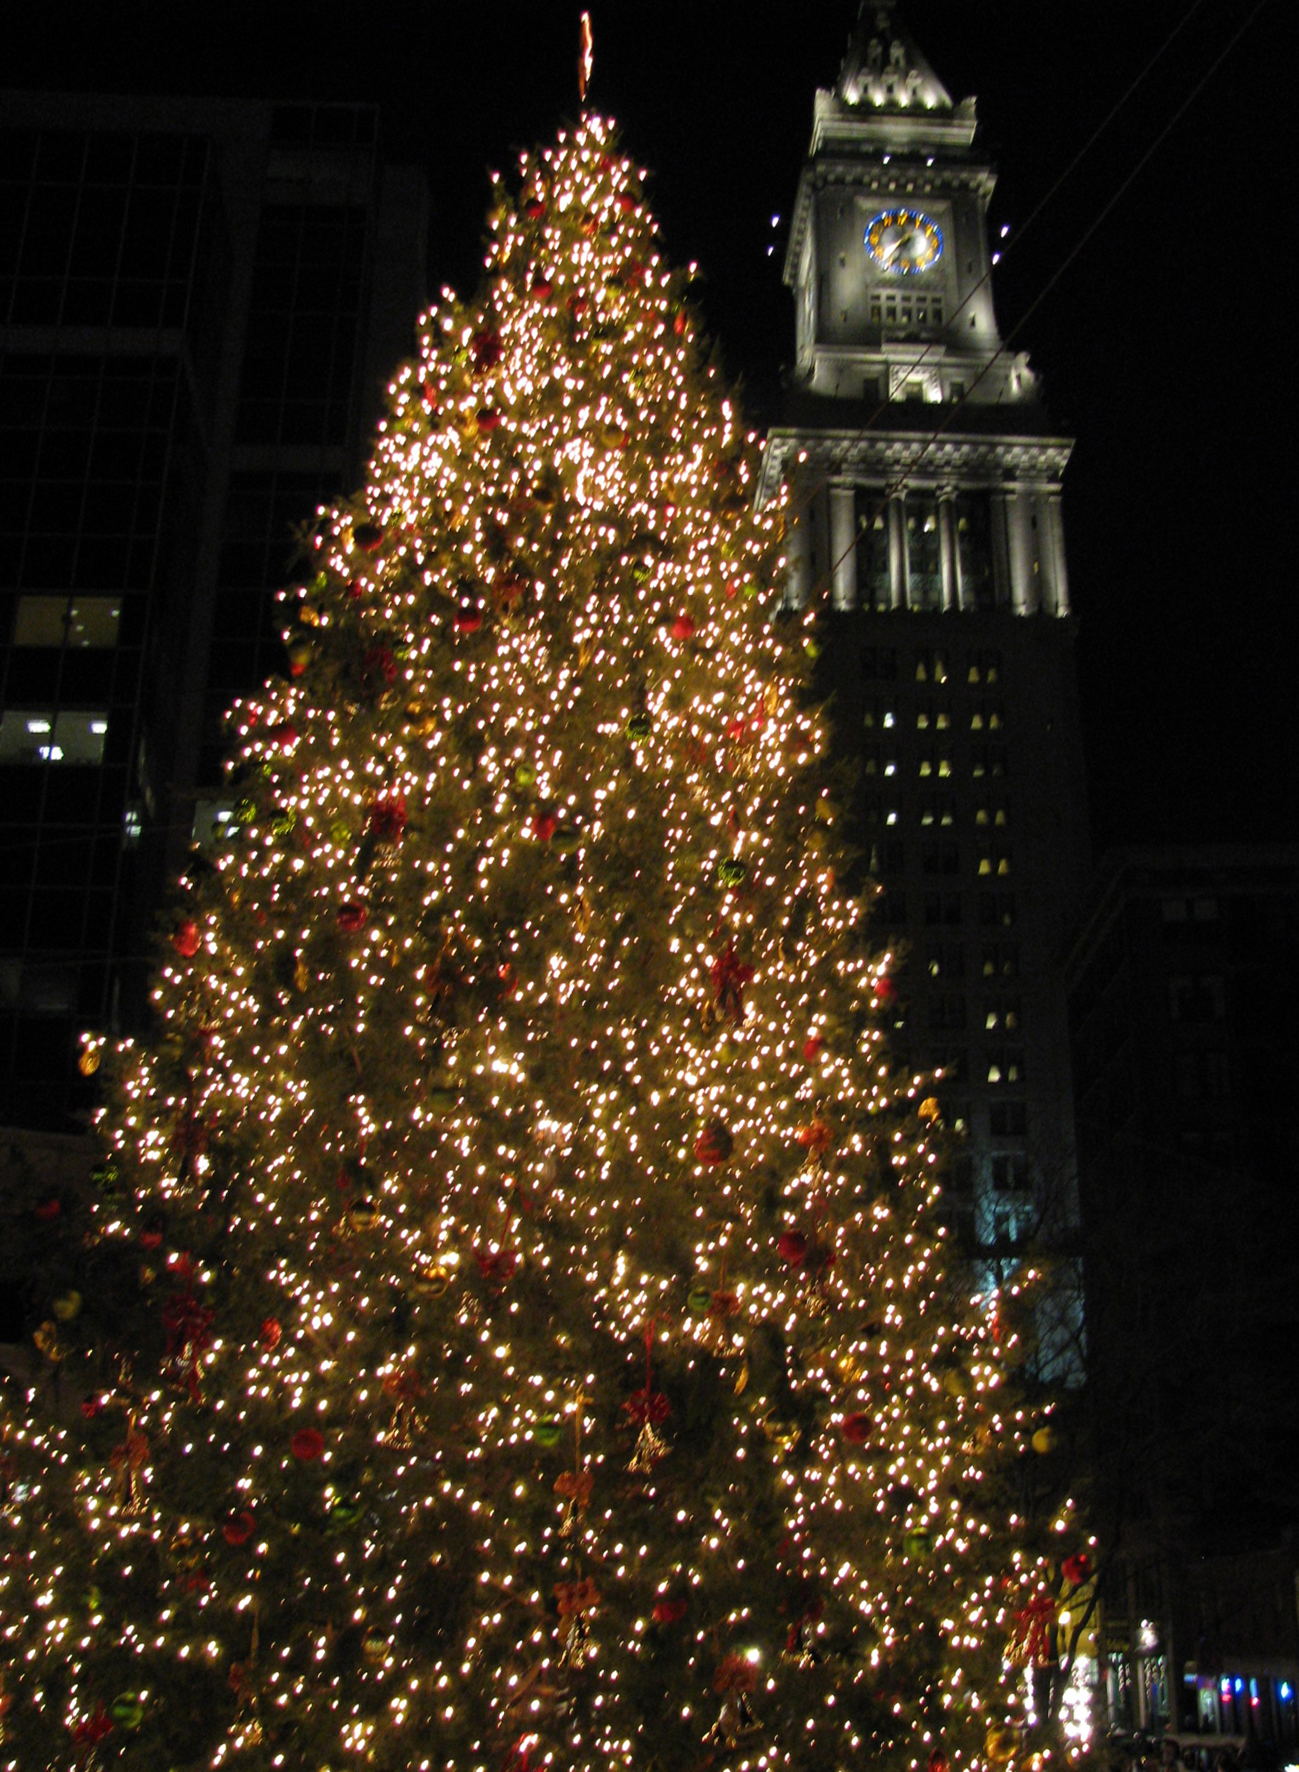 File:Christmas tree near the Quincy Market.jpg - Wikimedia Commons